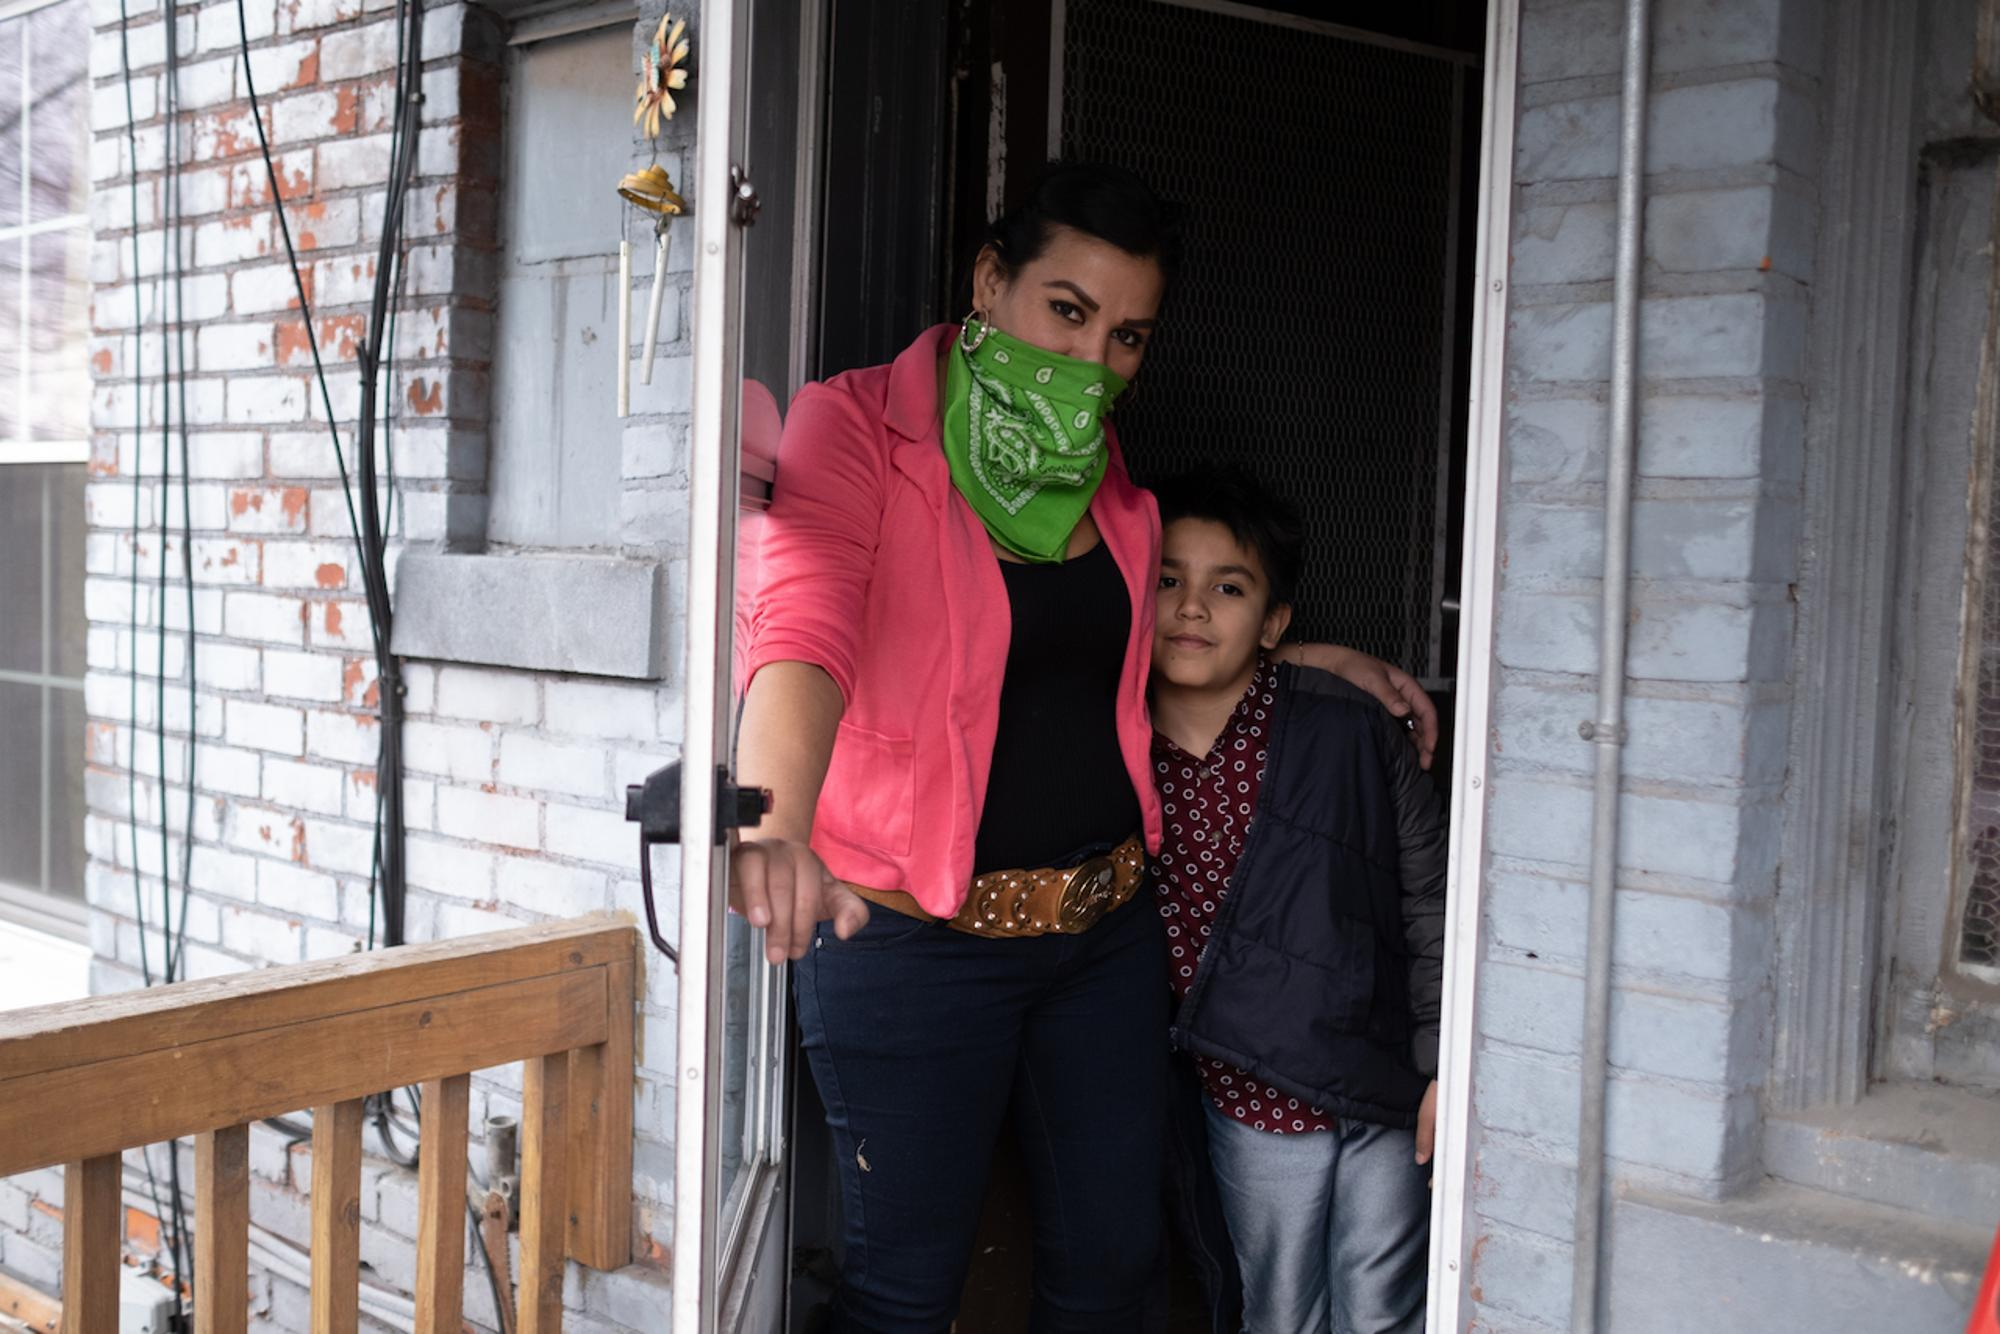 The Ibarra family in Southwest Detroit is packing in preparation to move amid shelter in place orders during the COVID-19 pandemic.Taken by Erik Paul Howard for WDET